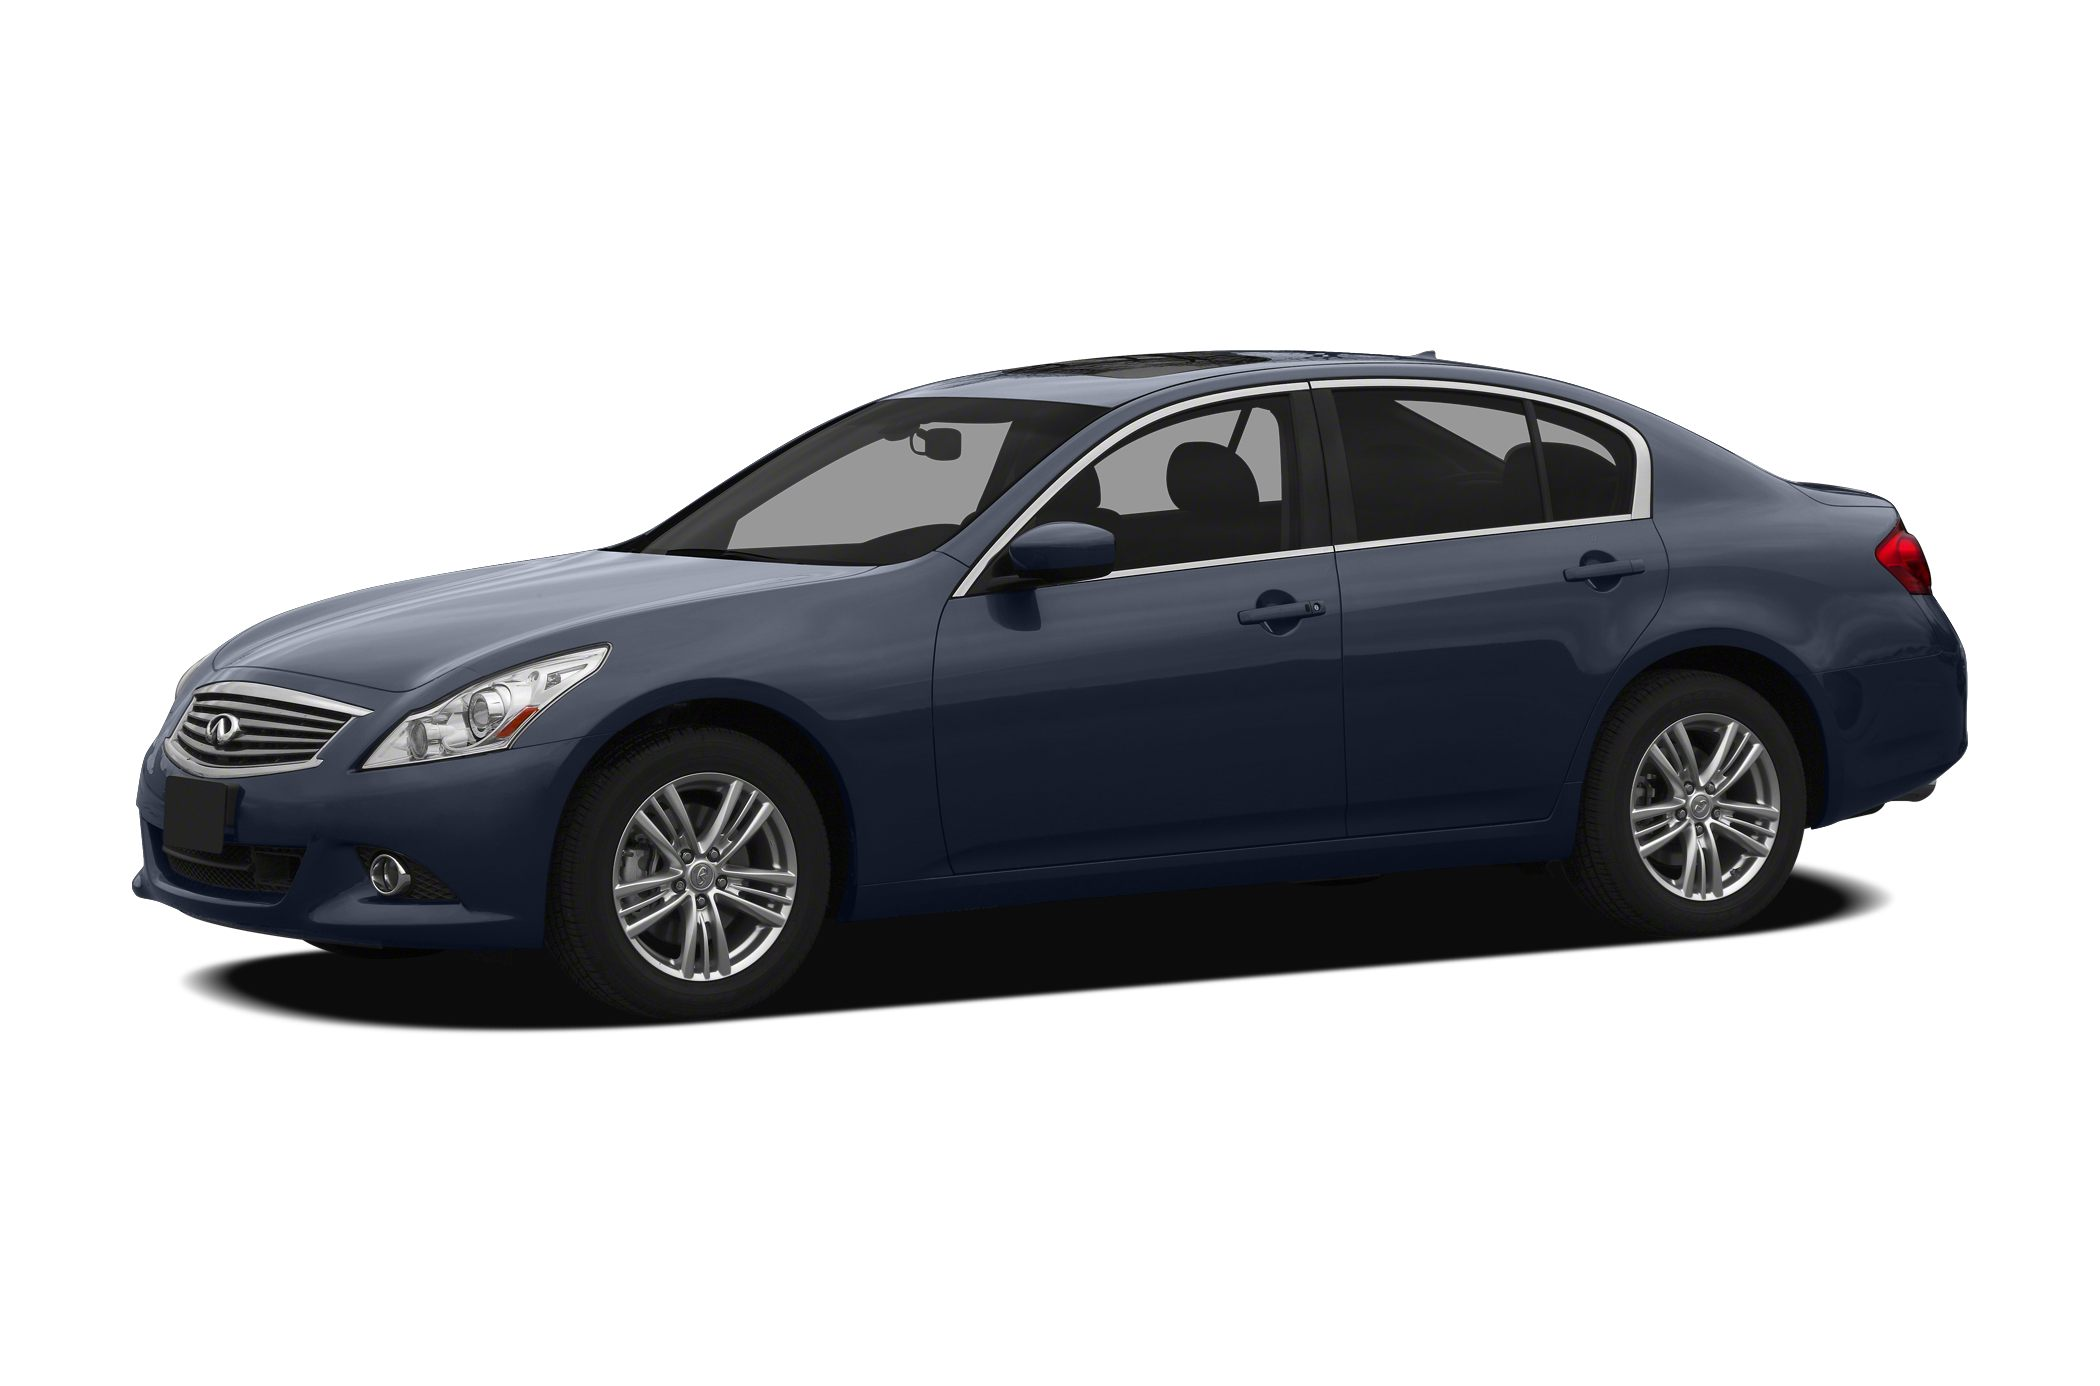 2012 Infiniti G37 Journey Sedan for sale in Escondido for $24,988 with 8 miles